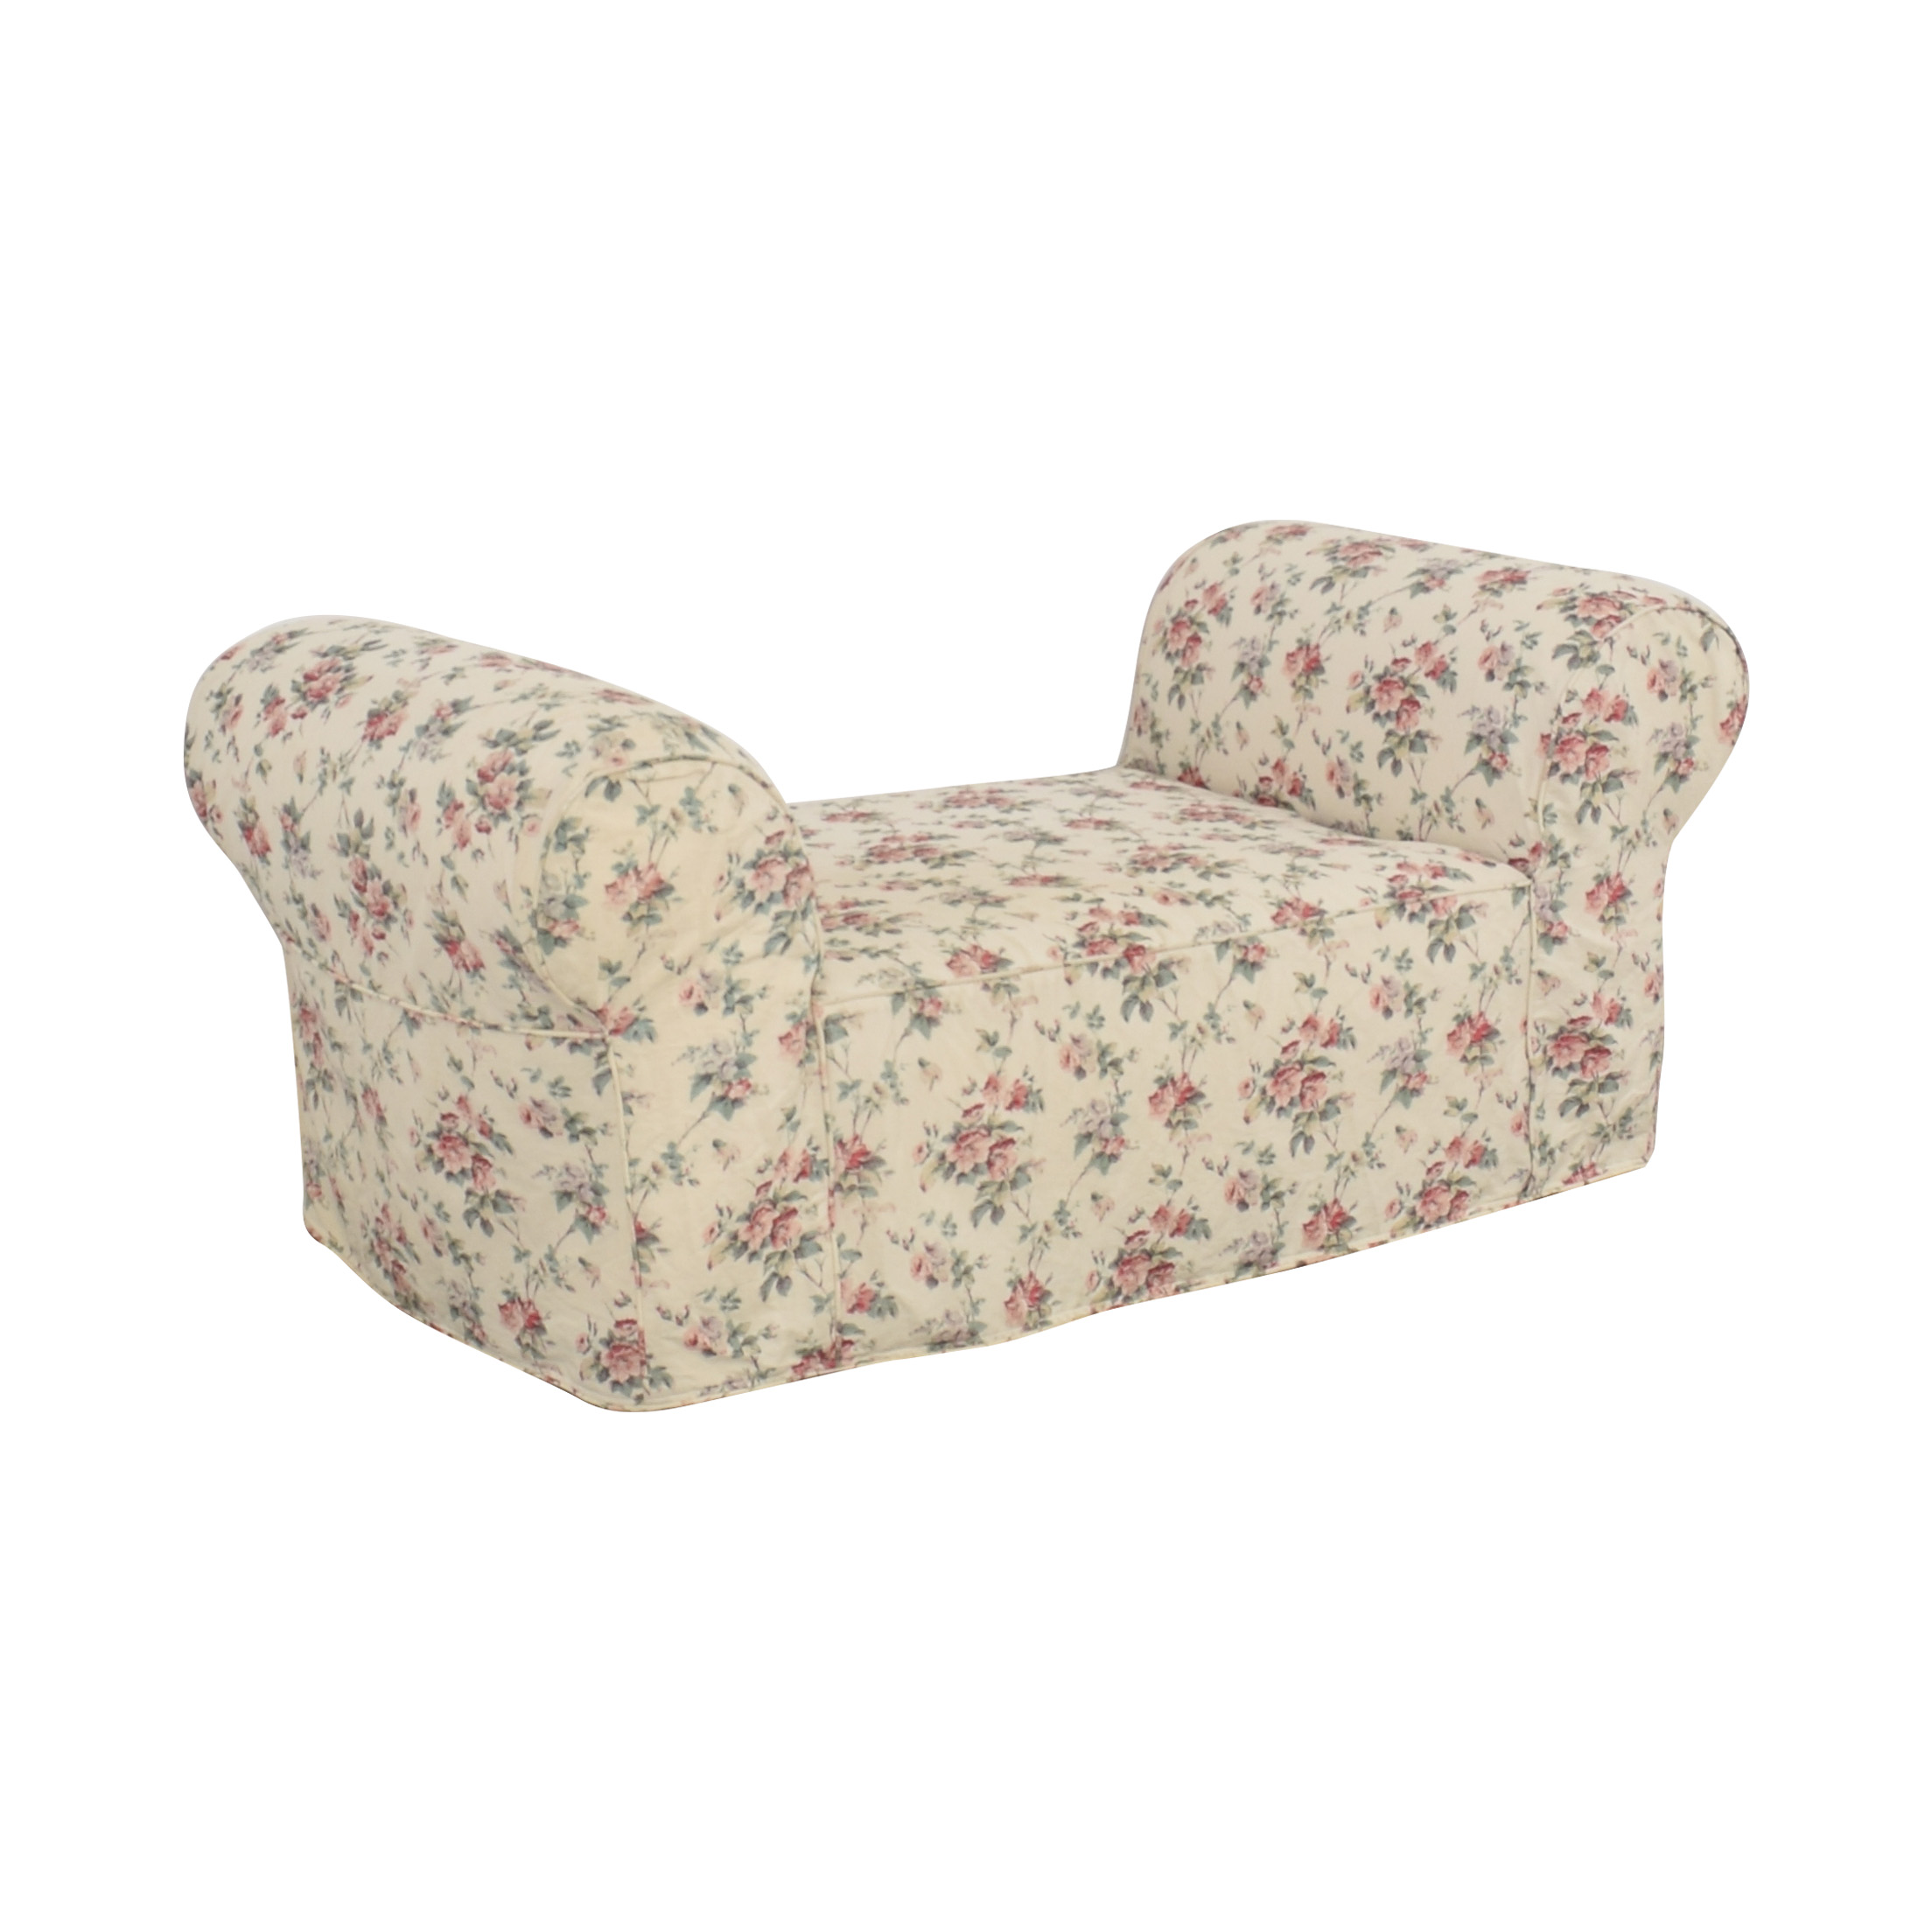 Rachel Ashwell Shabby Chic Shabby Chic Floral Loveseat price